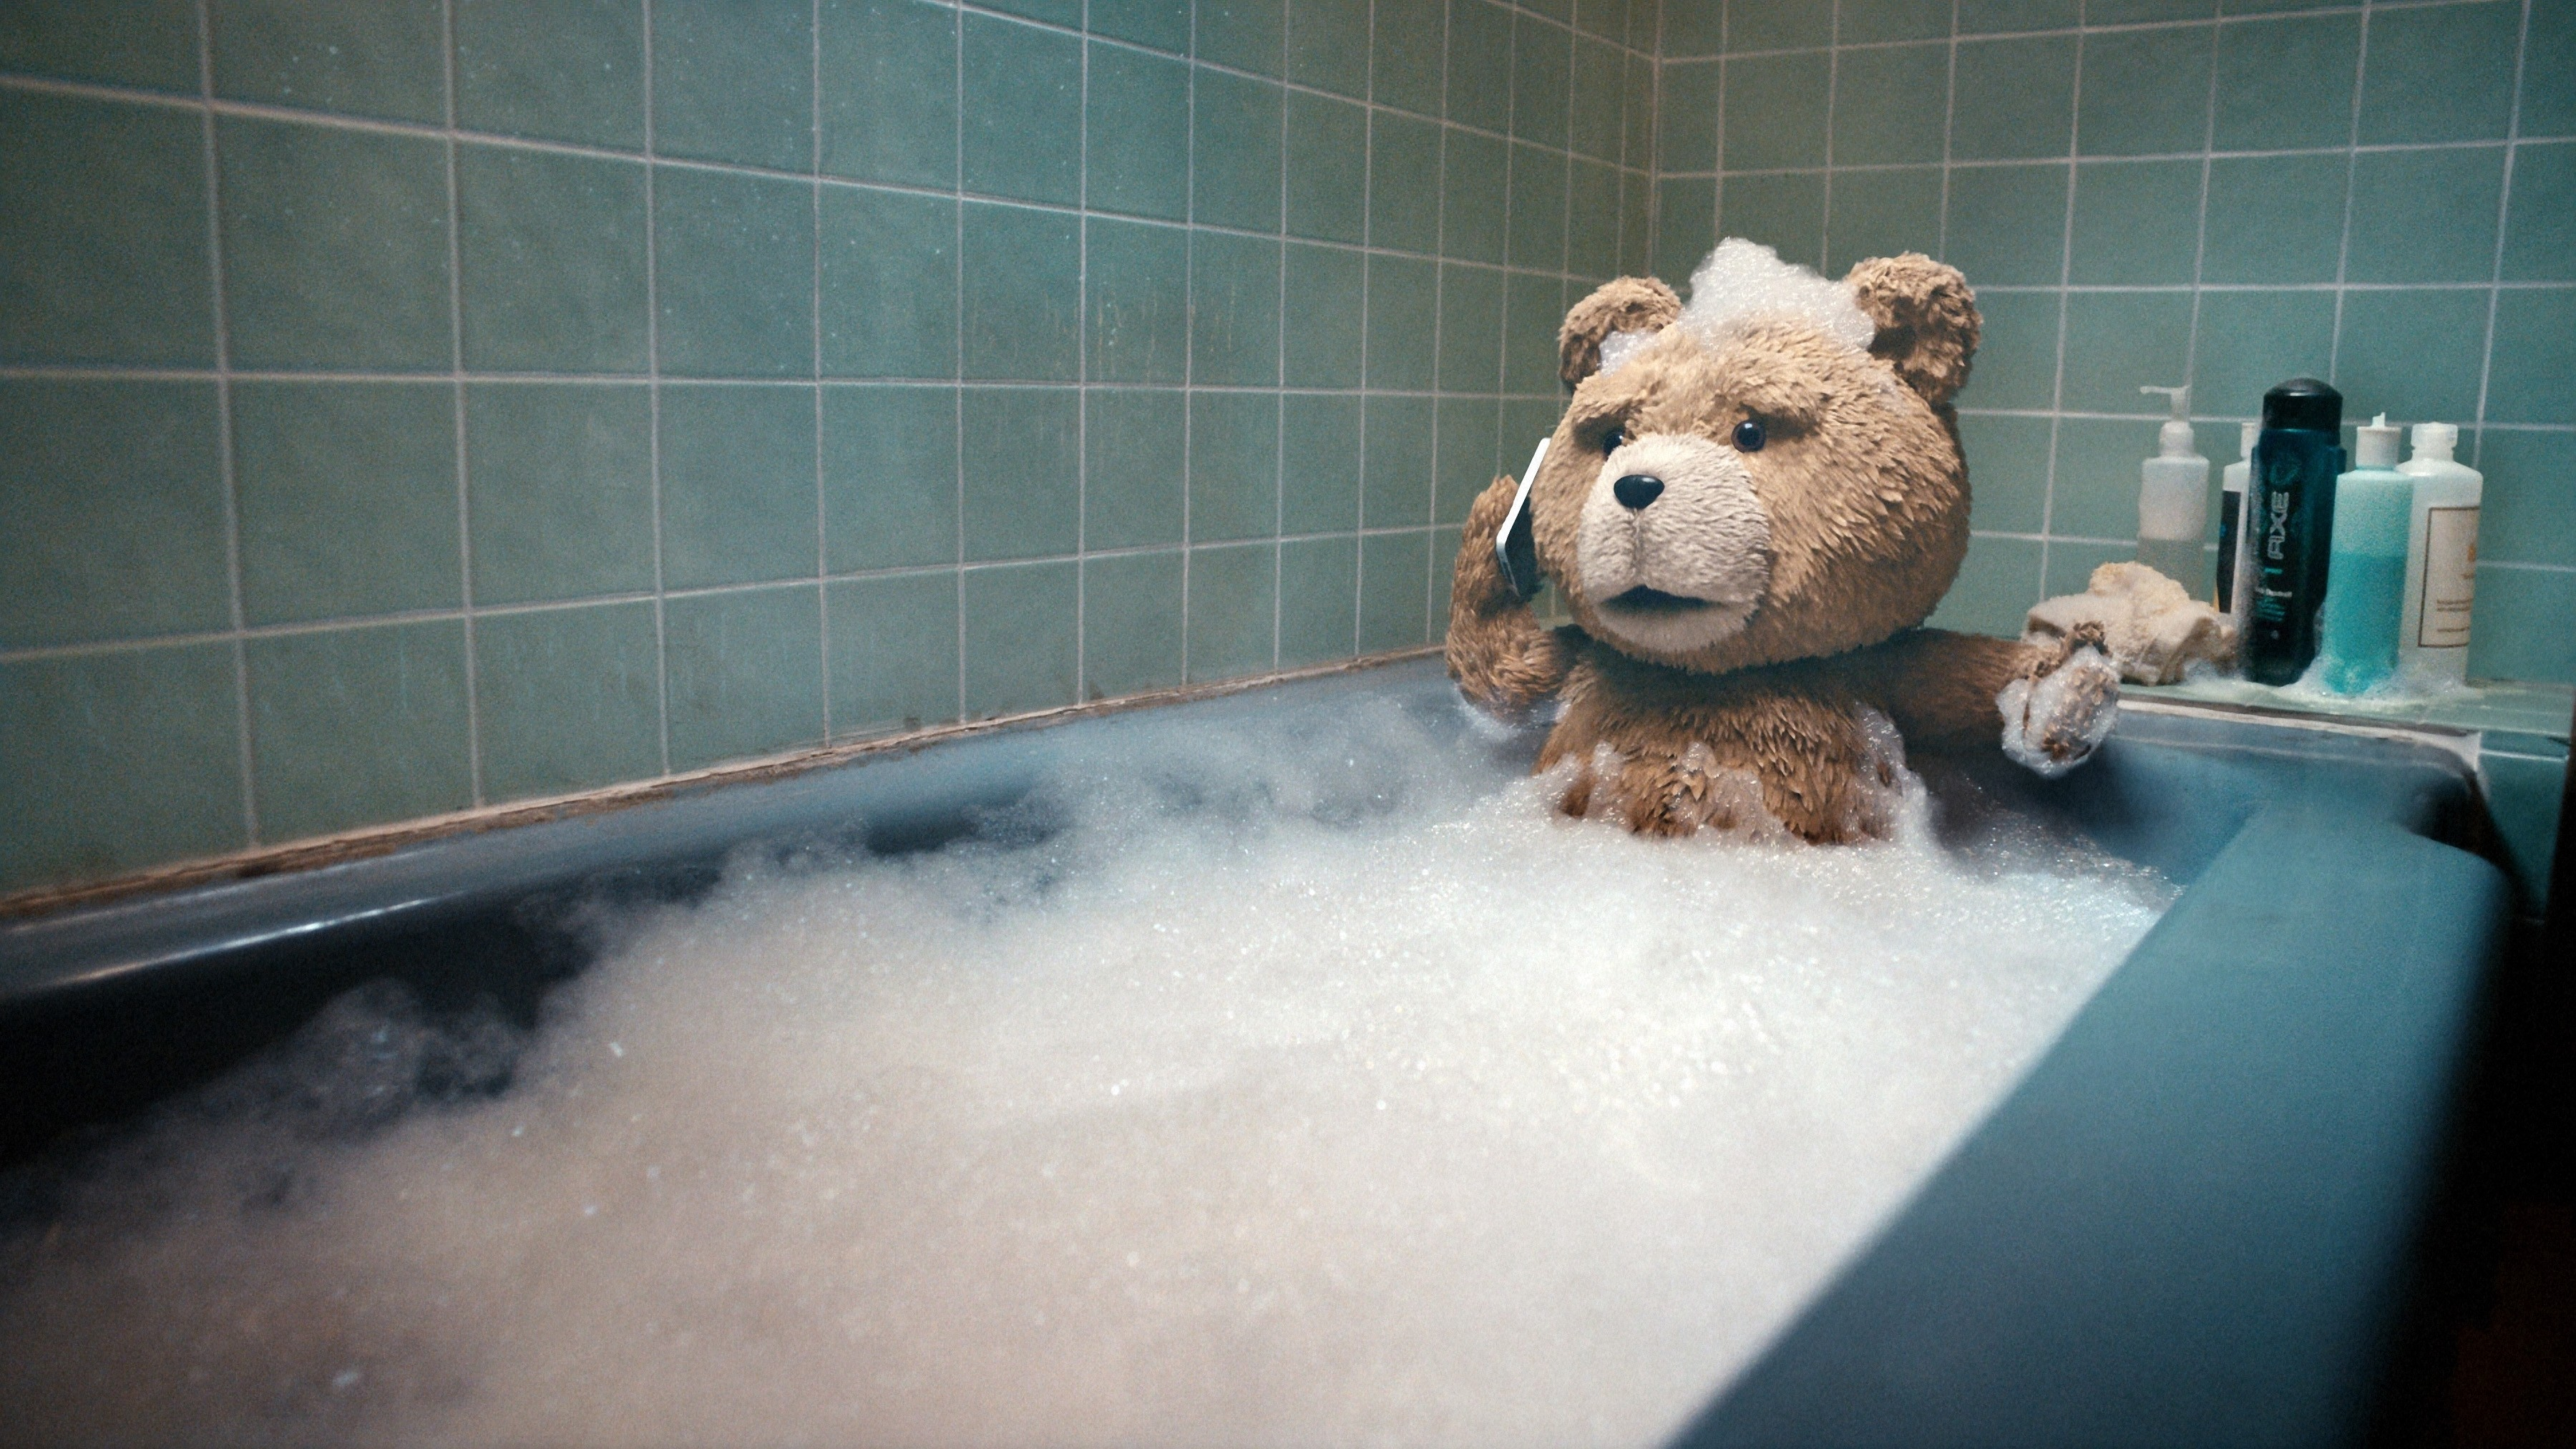 Best Pc Wallpapers Hd Cars Wallpaper Ted 2 Best Movies Of 2015 Film Bear Movies 2501